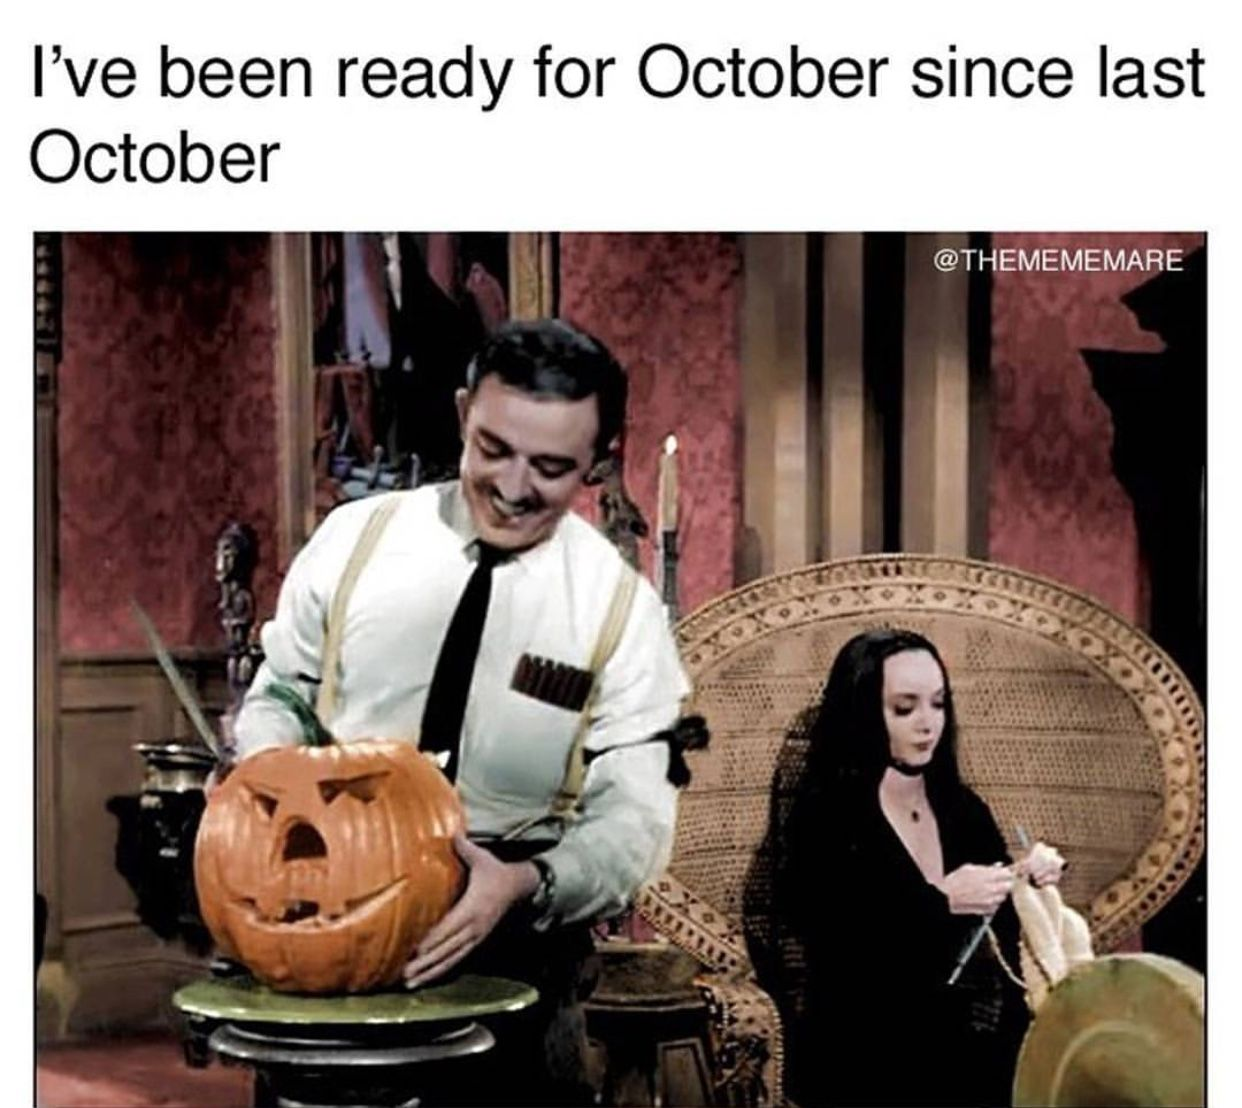 I Ve Been Ready For October Since Last October In 2020 Funny Halloween Memes Halloween Memes Halloween Funny